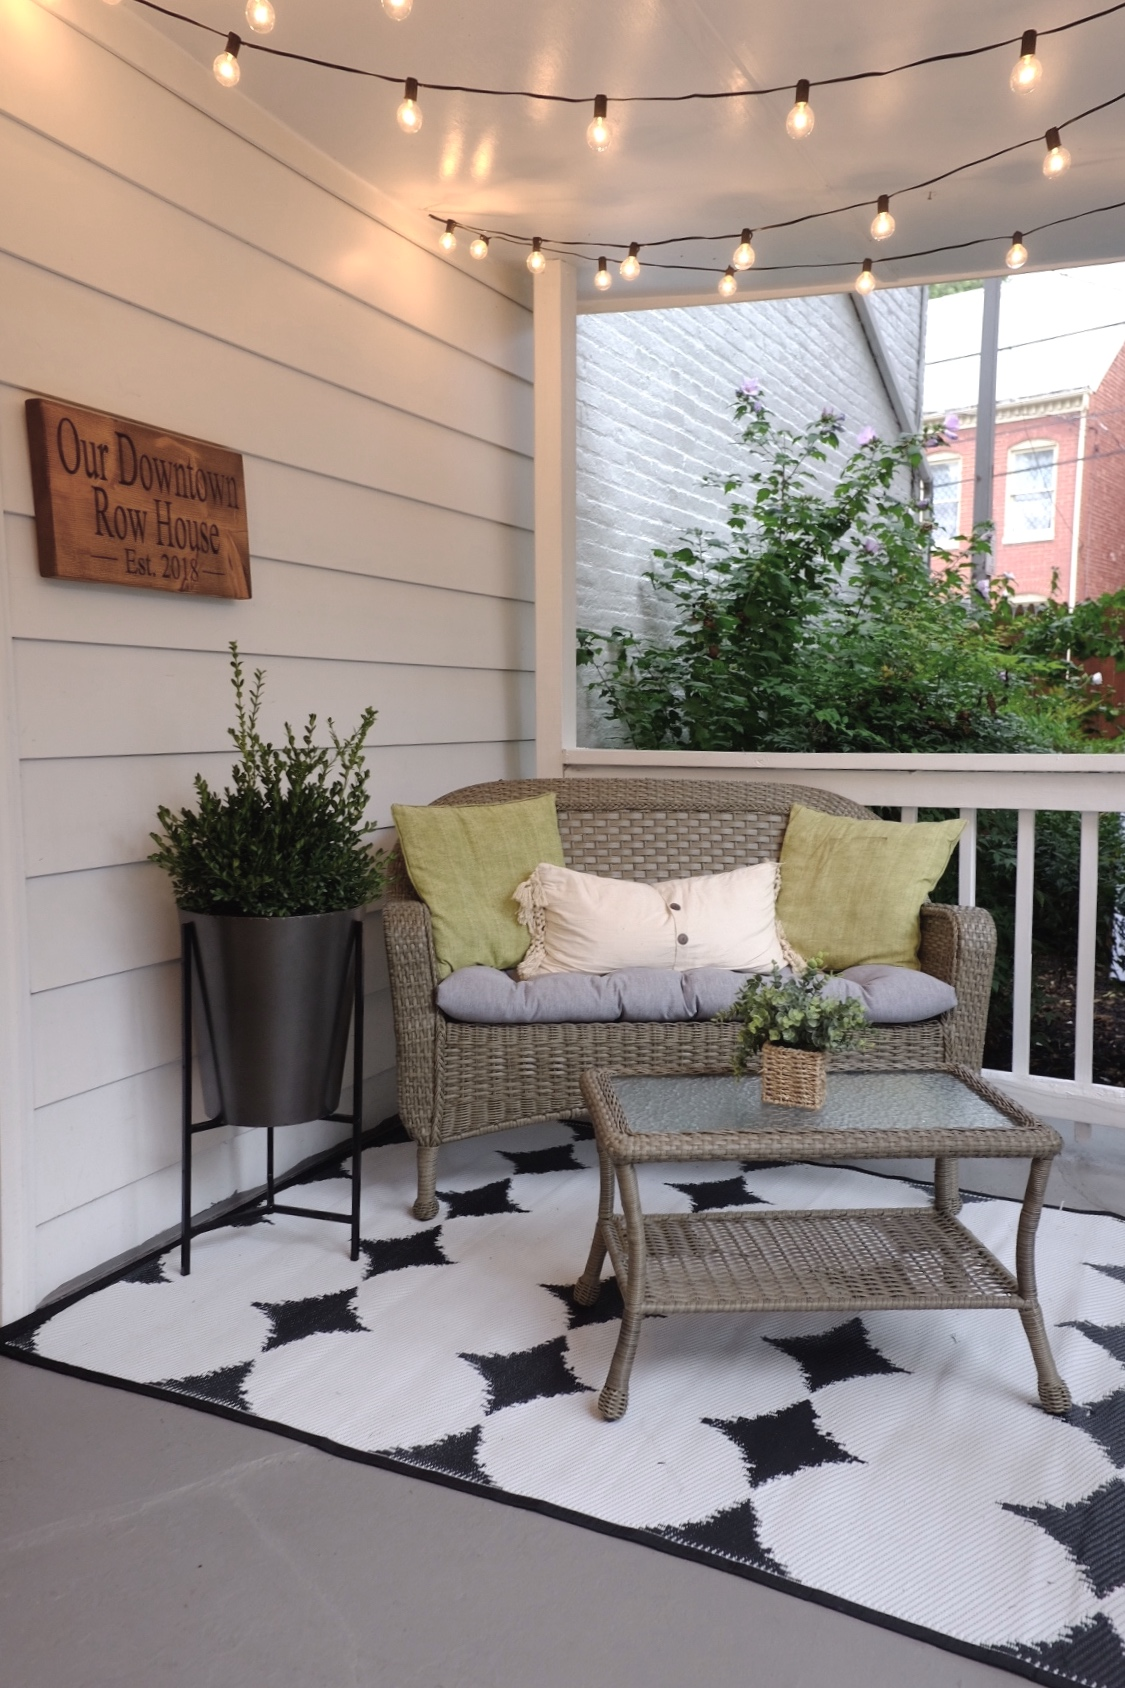 We added lights and a wicker couch so our guests can enjoy the backyard.  Rowhouse sign is from  Smith Crafted Wood Works .